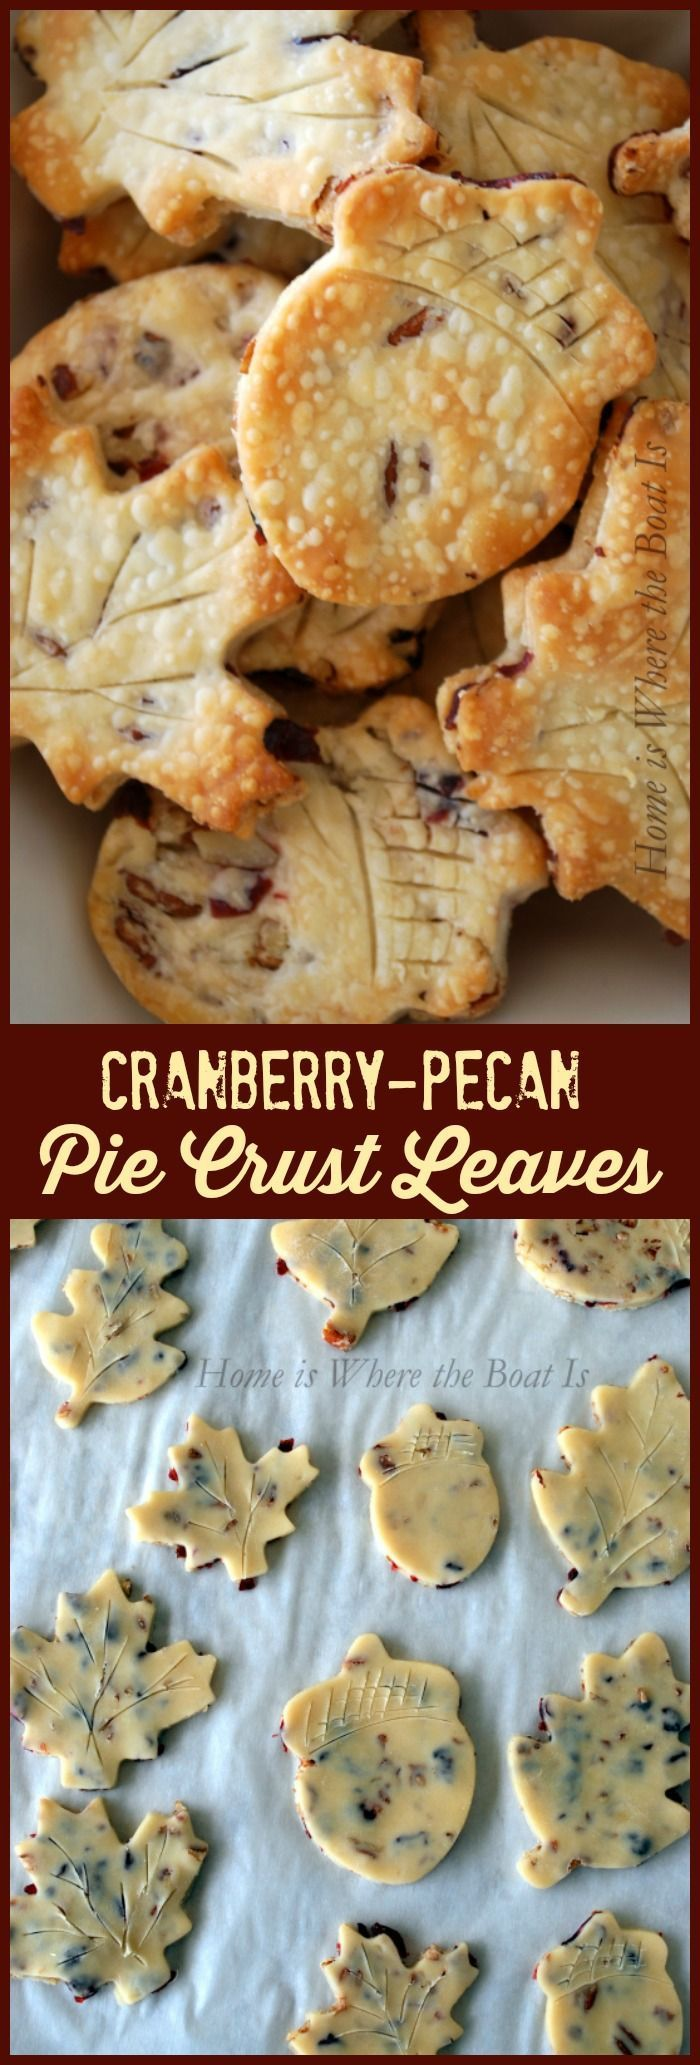 "Cranberry-Pecan Pie Crust Leaves Dress up your left over Thanksgiving turkey with Cranberry-Pecan Crusts for pot pie, piecrust leaf ""sandwiches"" of pecans and cranberries!"